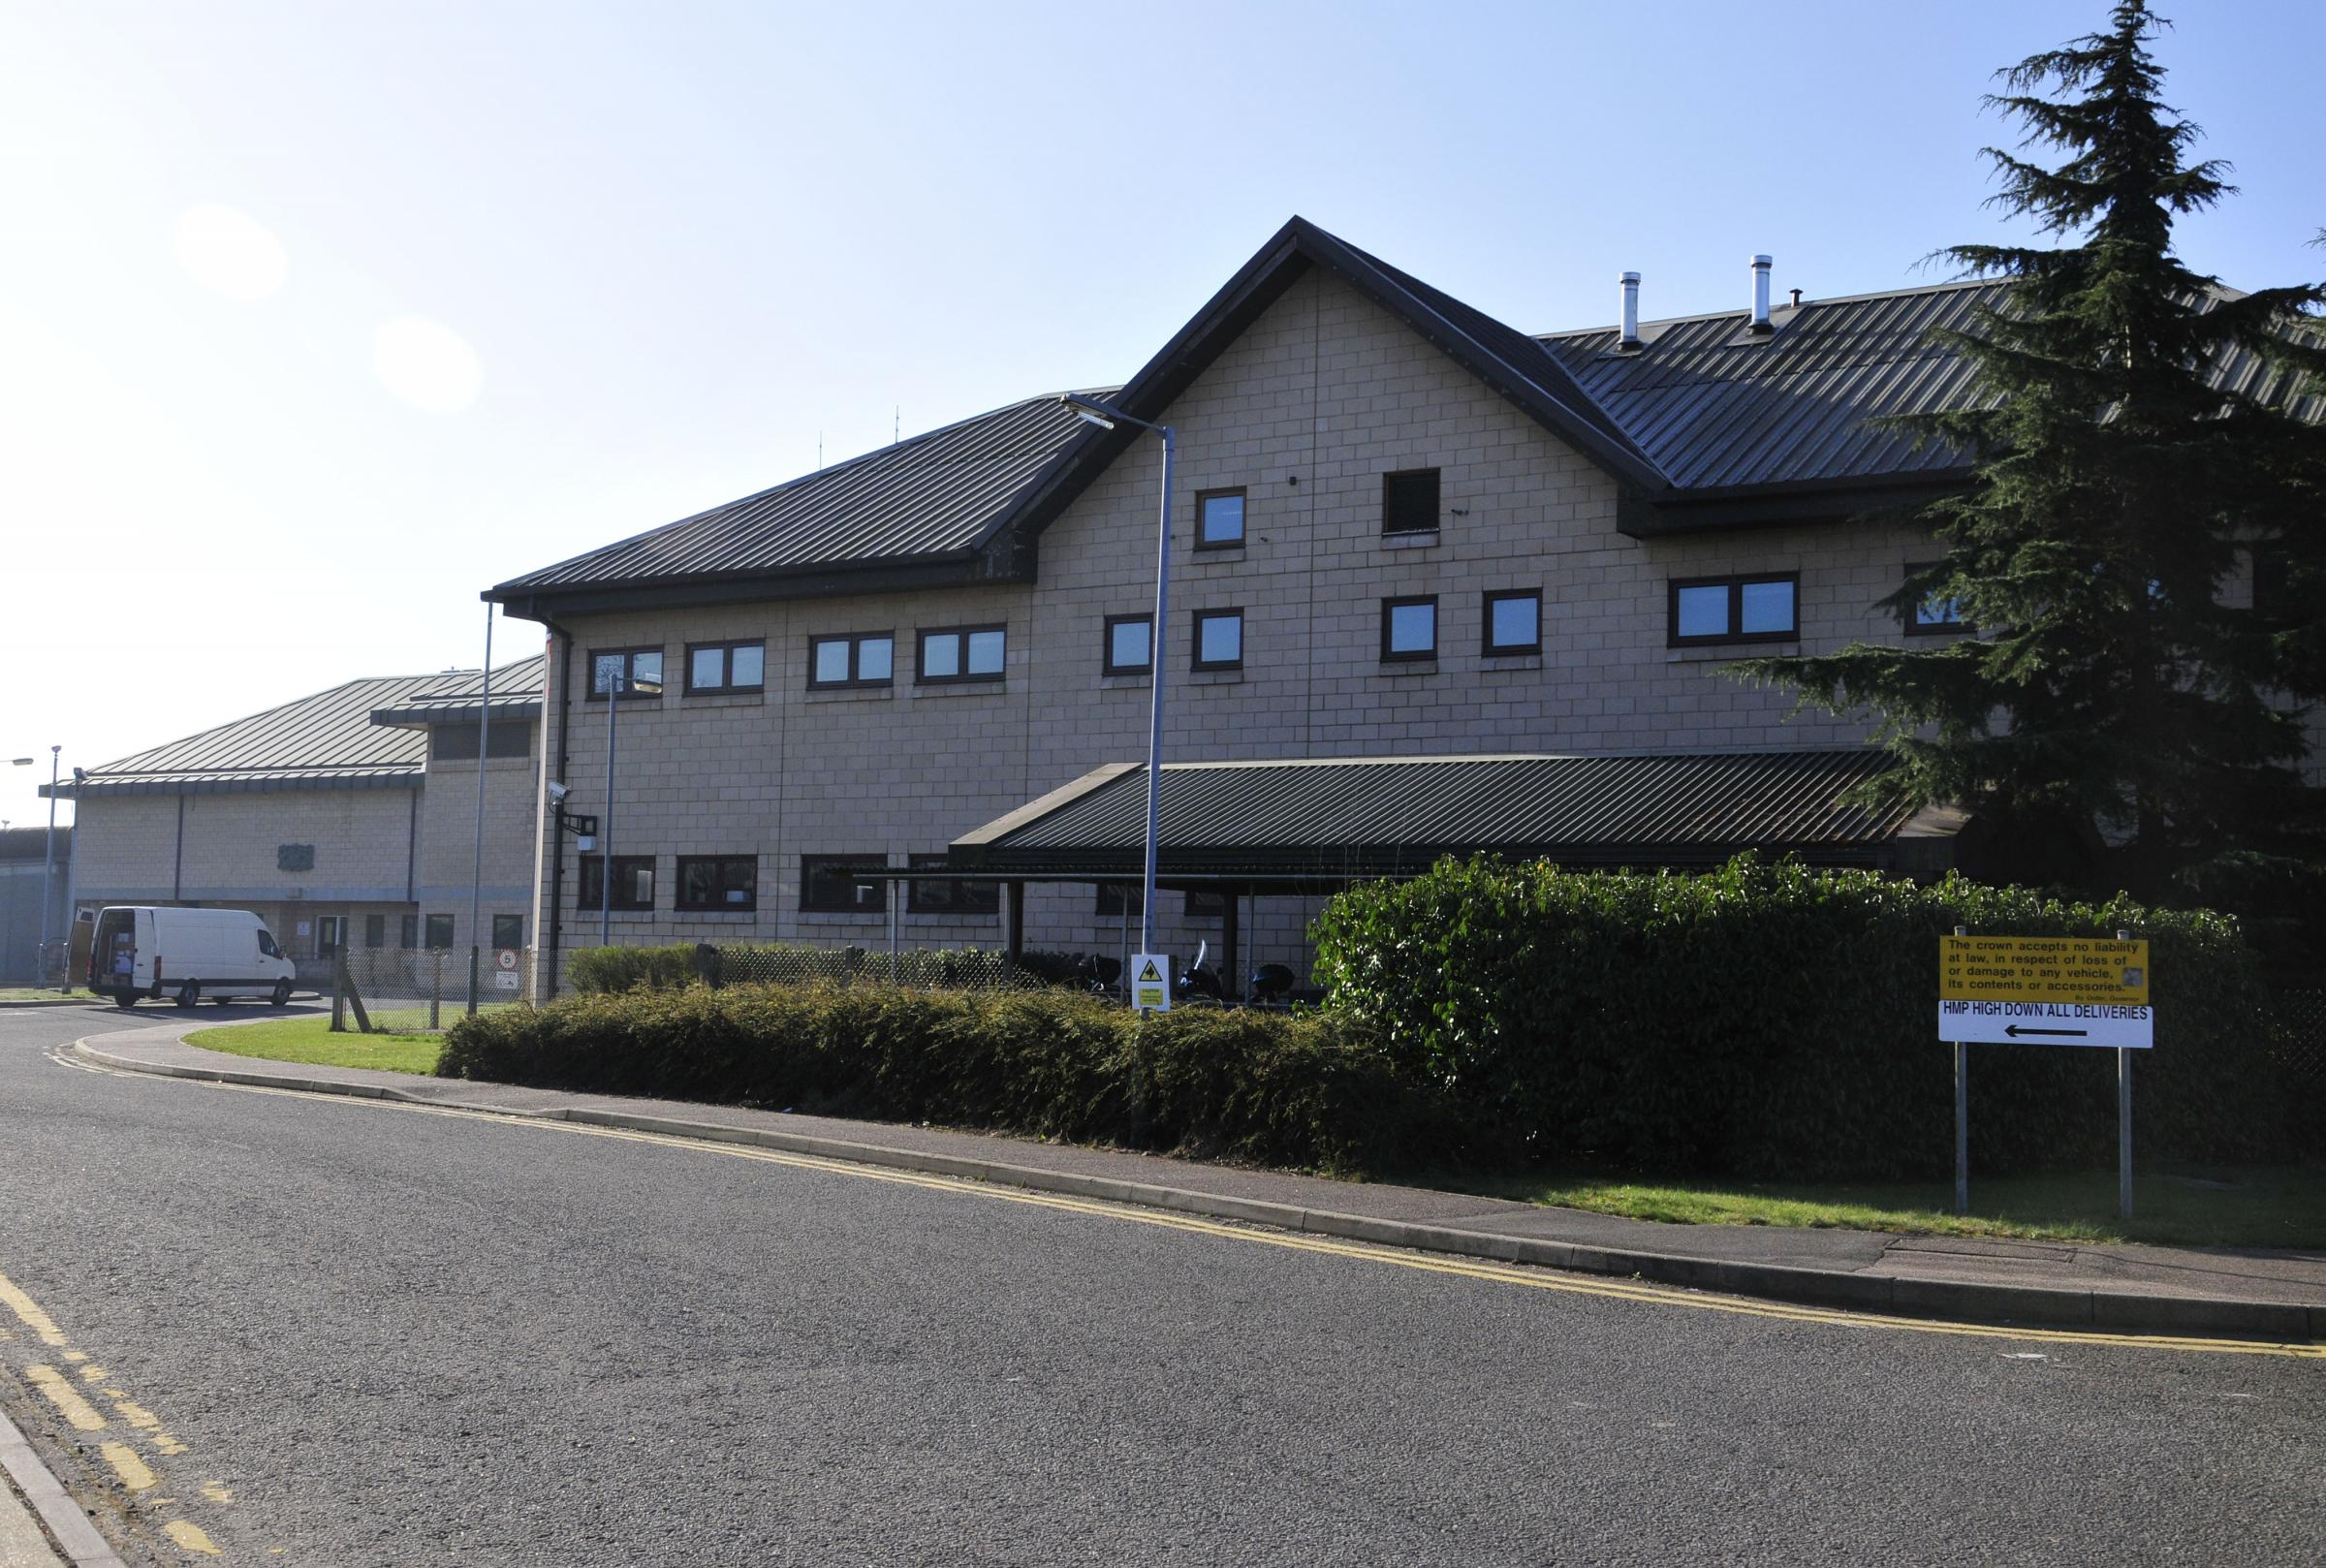 High Down prison, in Banstead, is currently understaffed by 28 prison officer positions